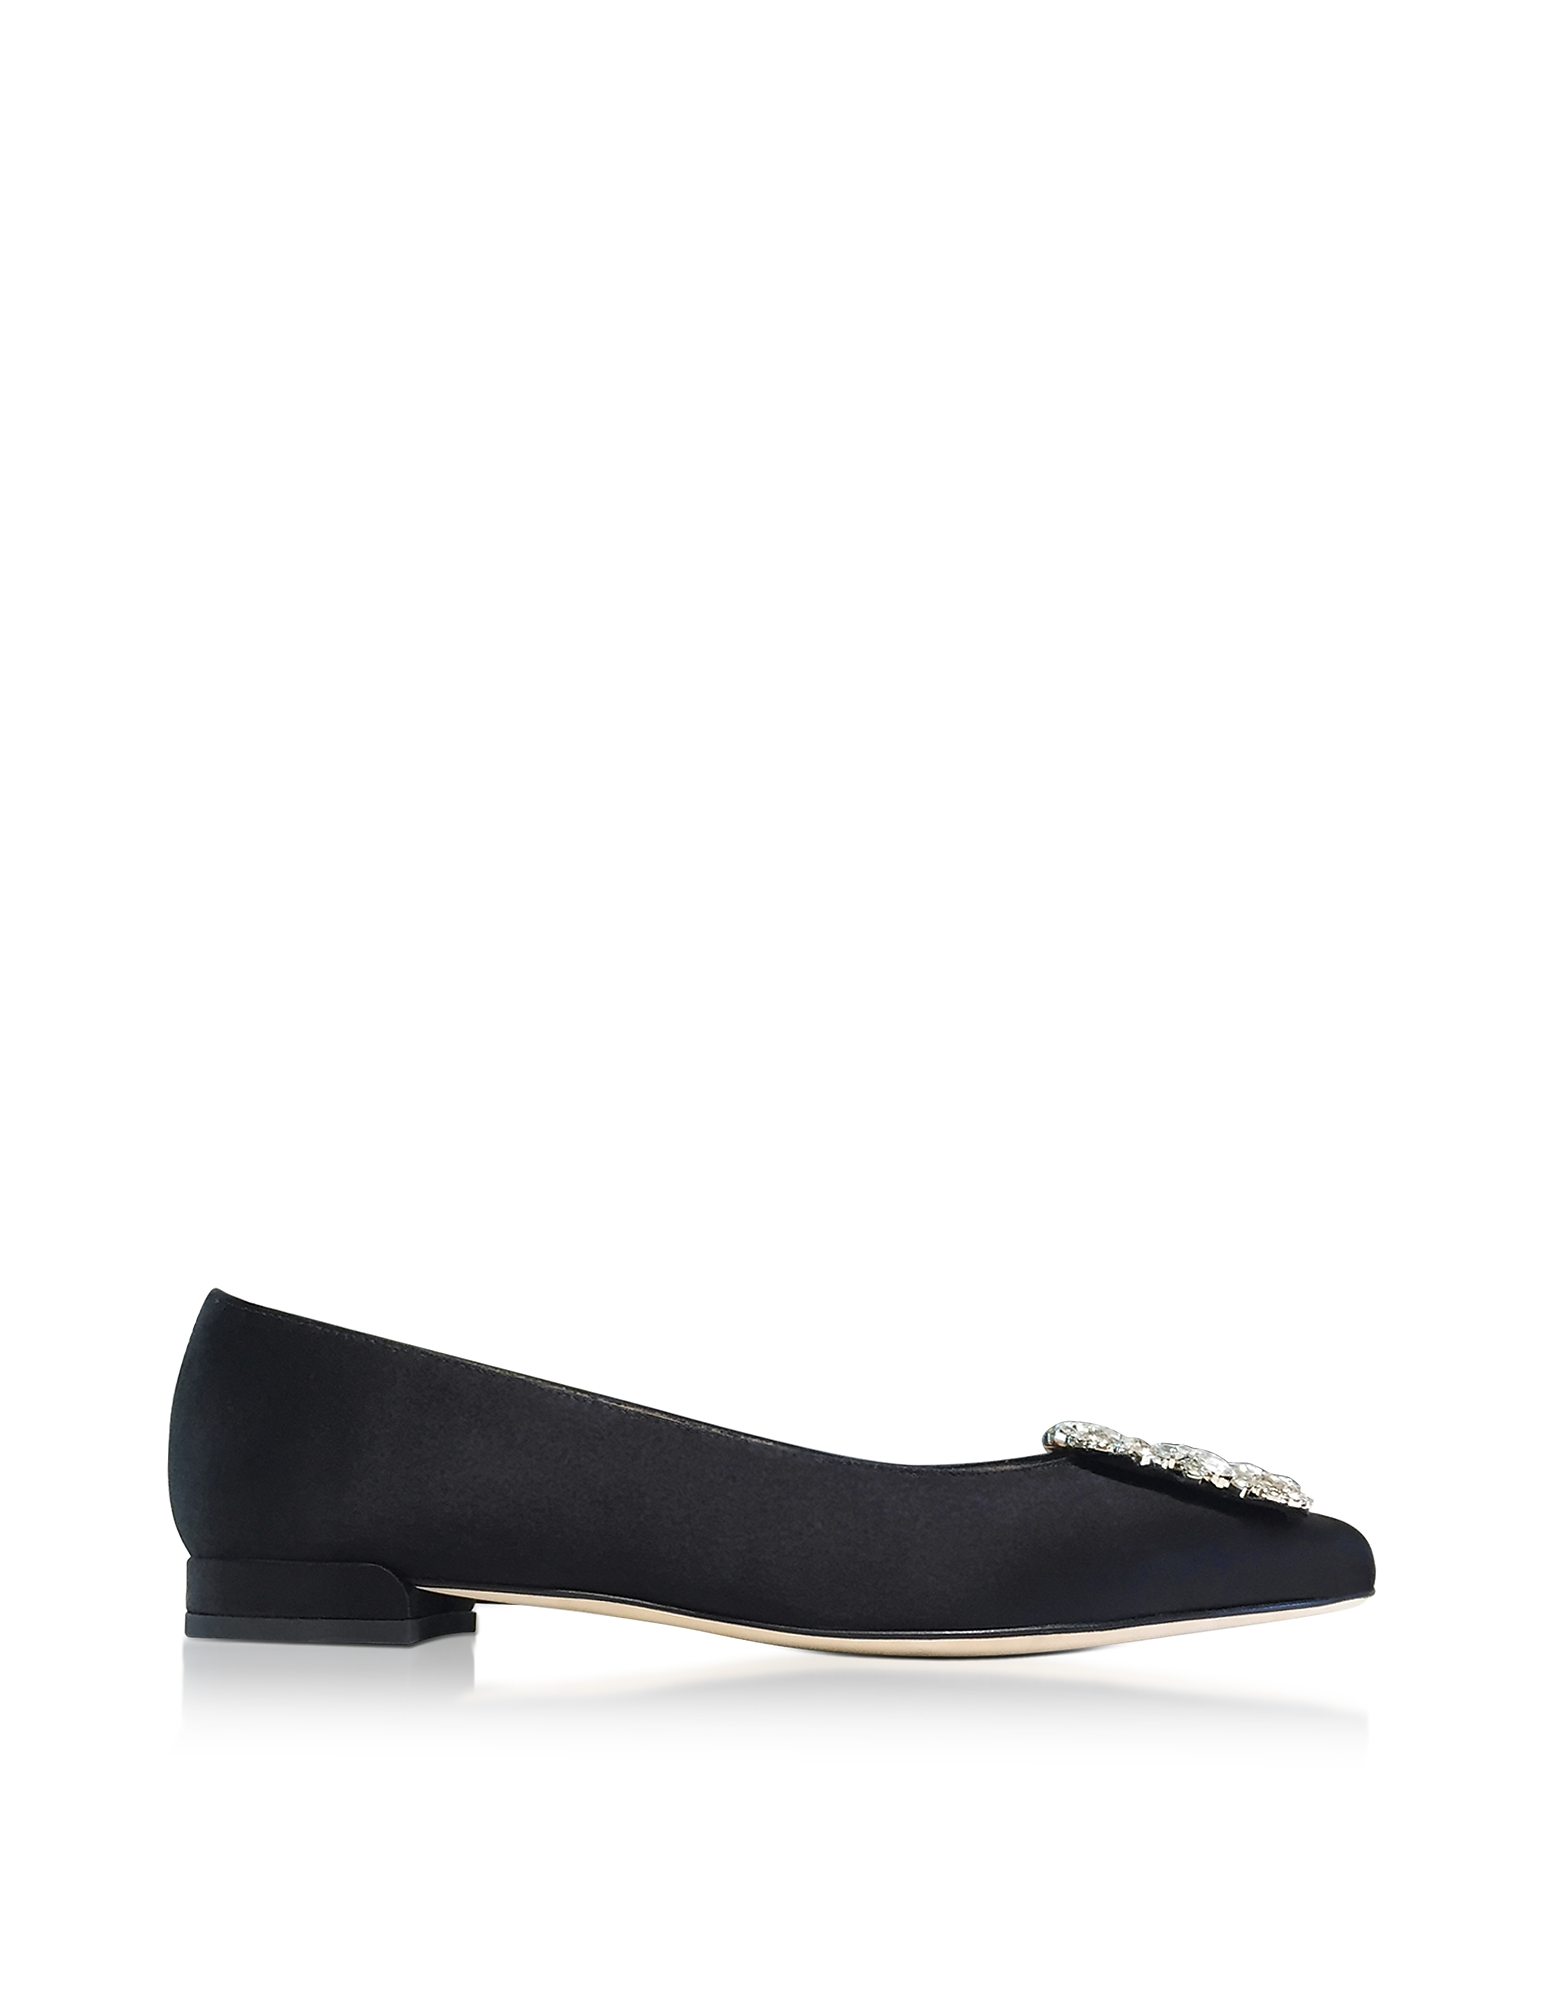 Stuart Weitzman Shoes, Fetching Black Satin Pointed Toe Flat Ballerinas w/Crystals